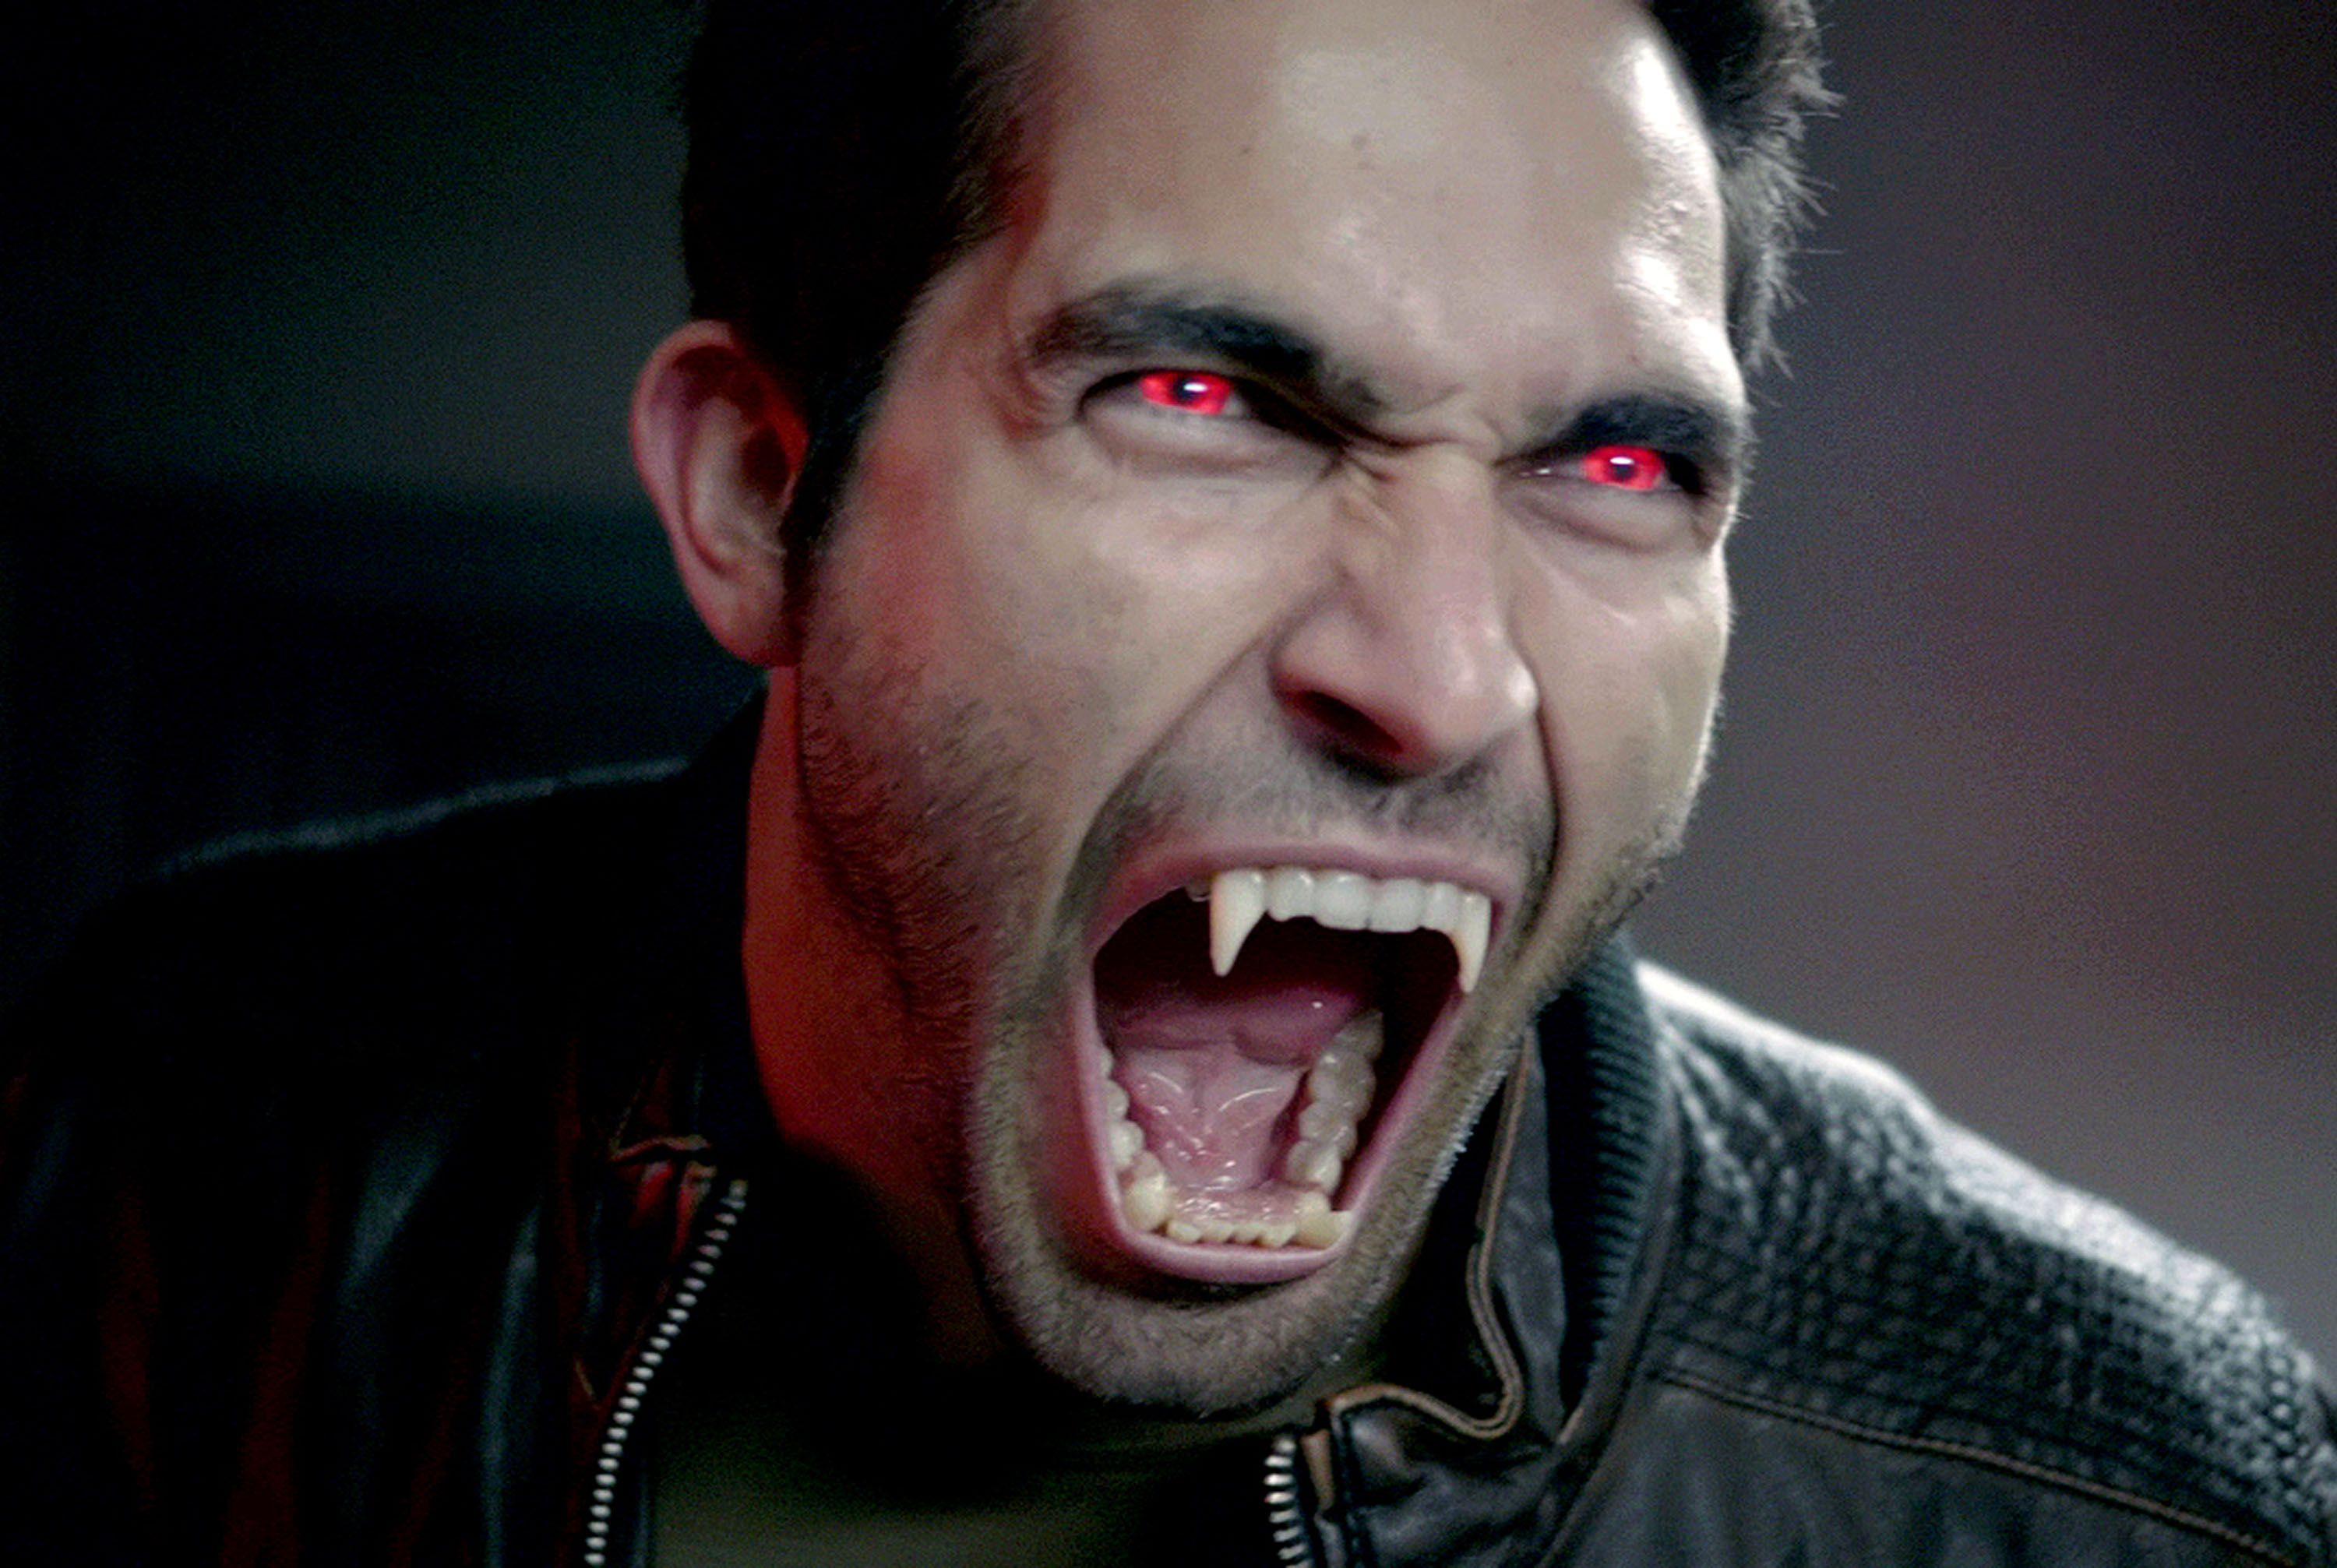 Excellent teen wolf pictures right! good